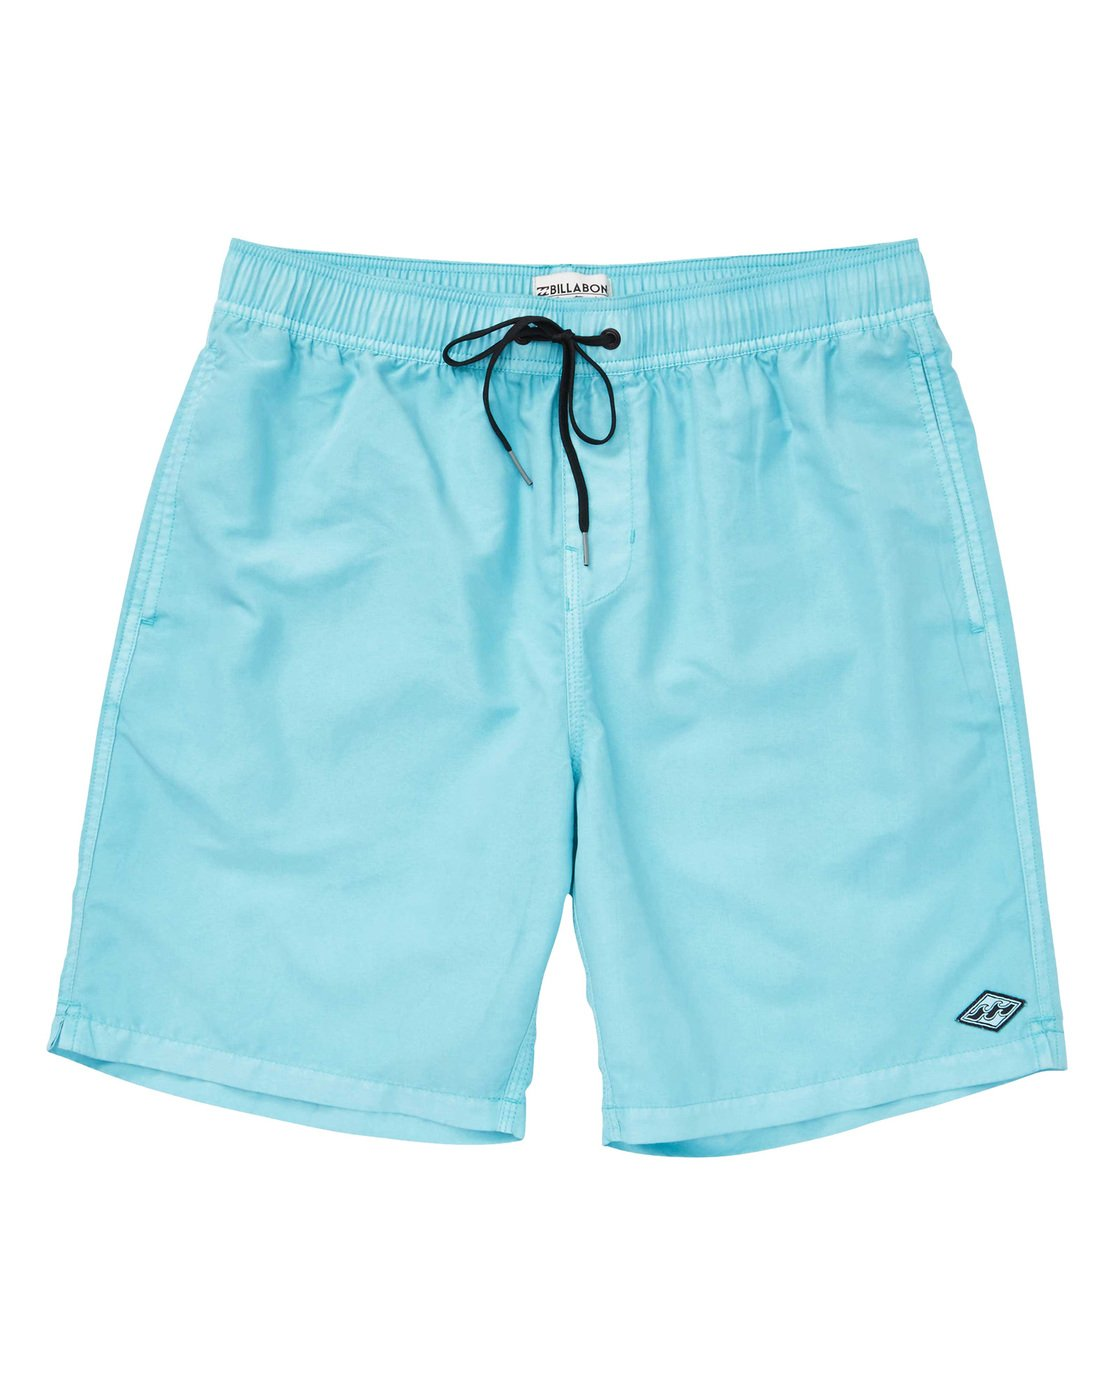 c2752d0a692 0 All Day Layback Boardshorts Blue M182TBAD Billabong